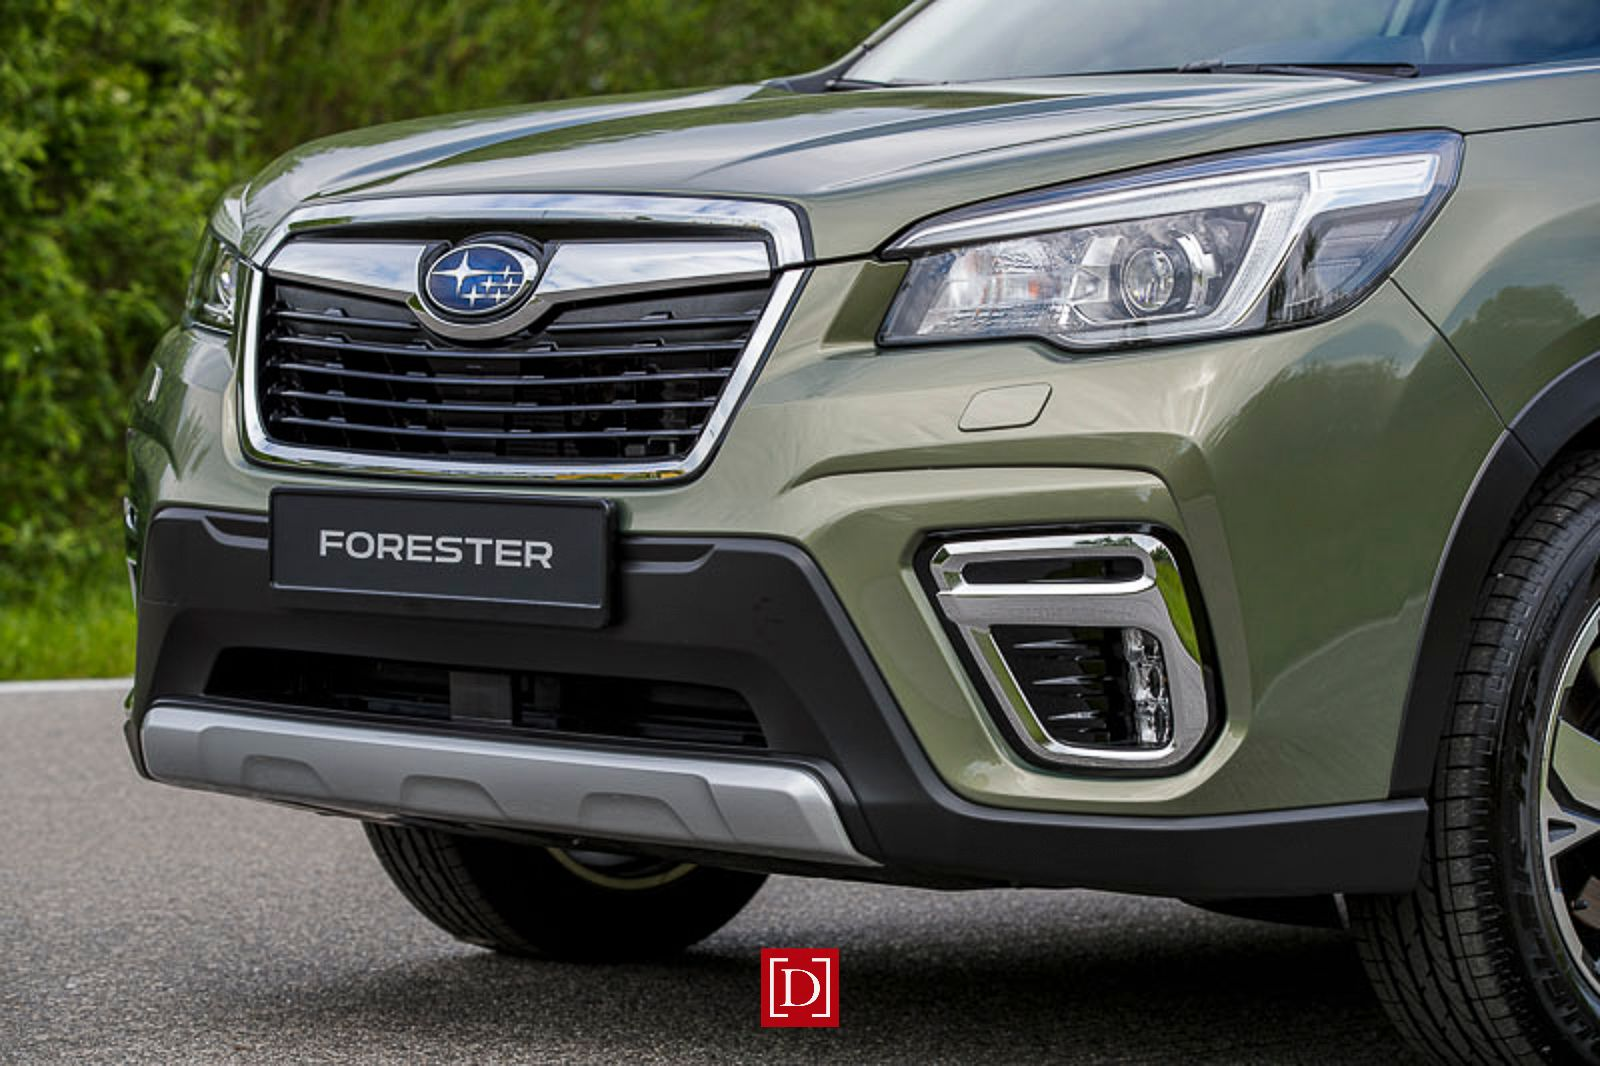 forester-e-boxer_low-020-22723